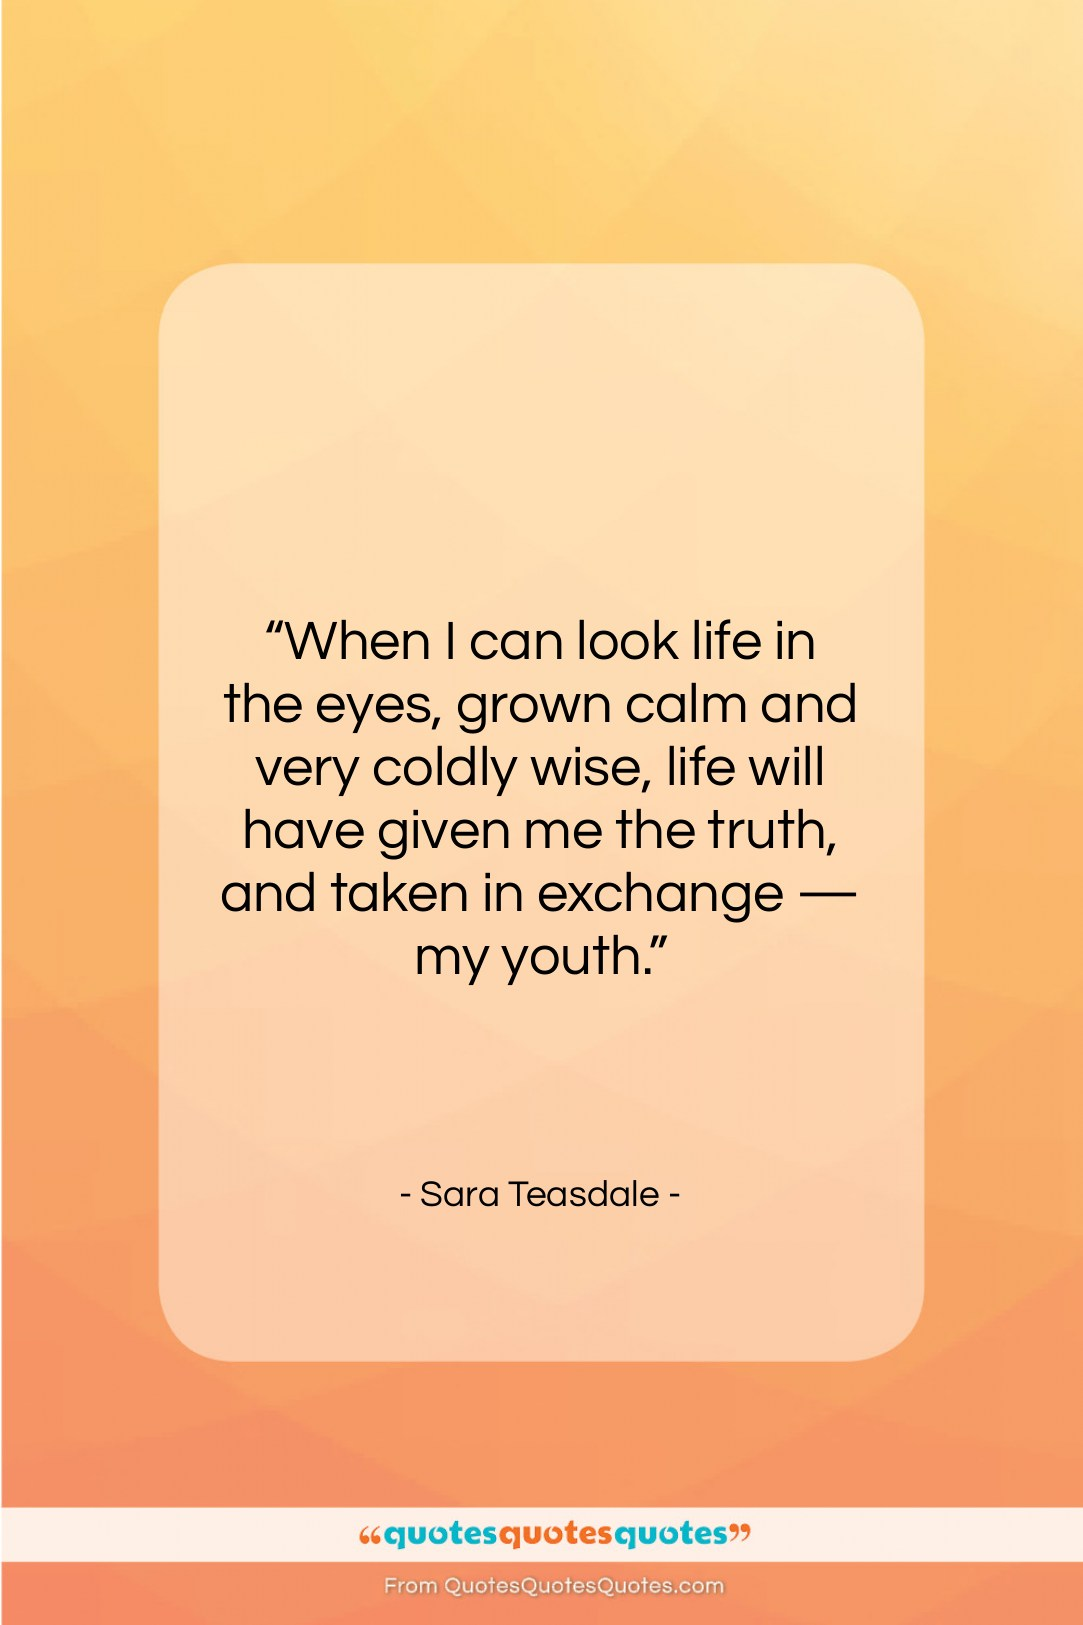 """Sara Teasdale quote: """"When I can look life in the…""""- at QuotesQuotesQuotes.com"""